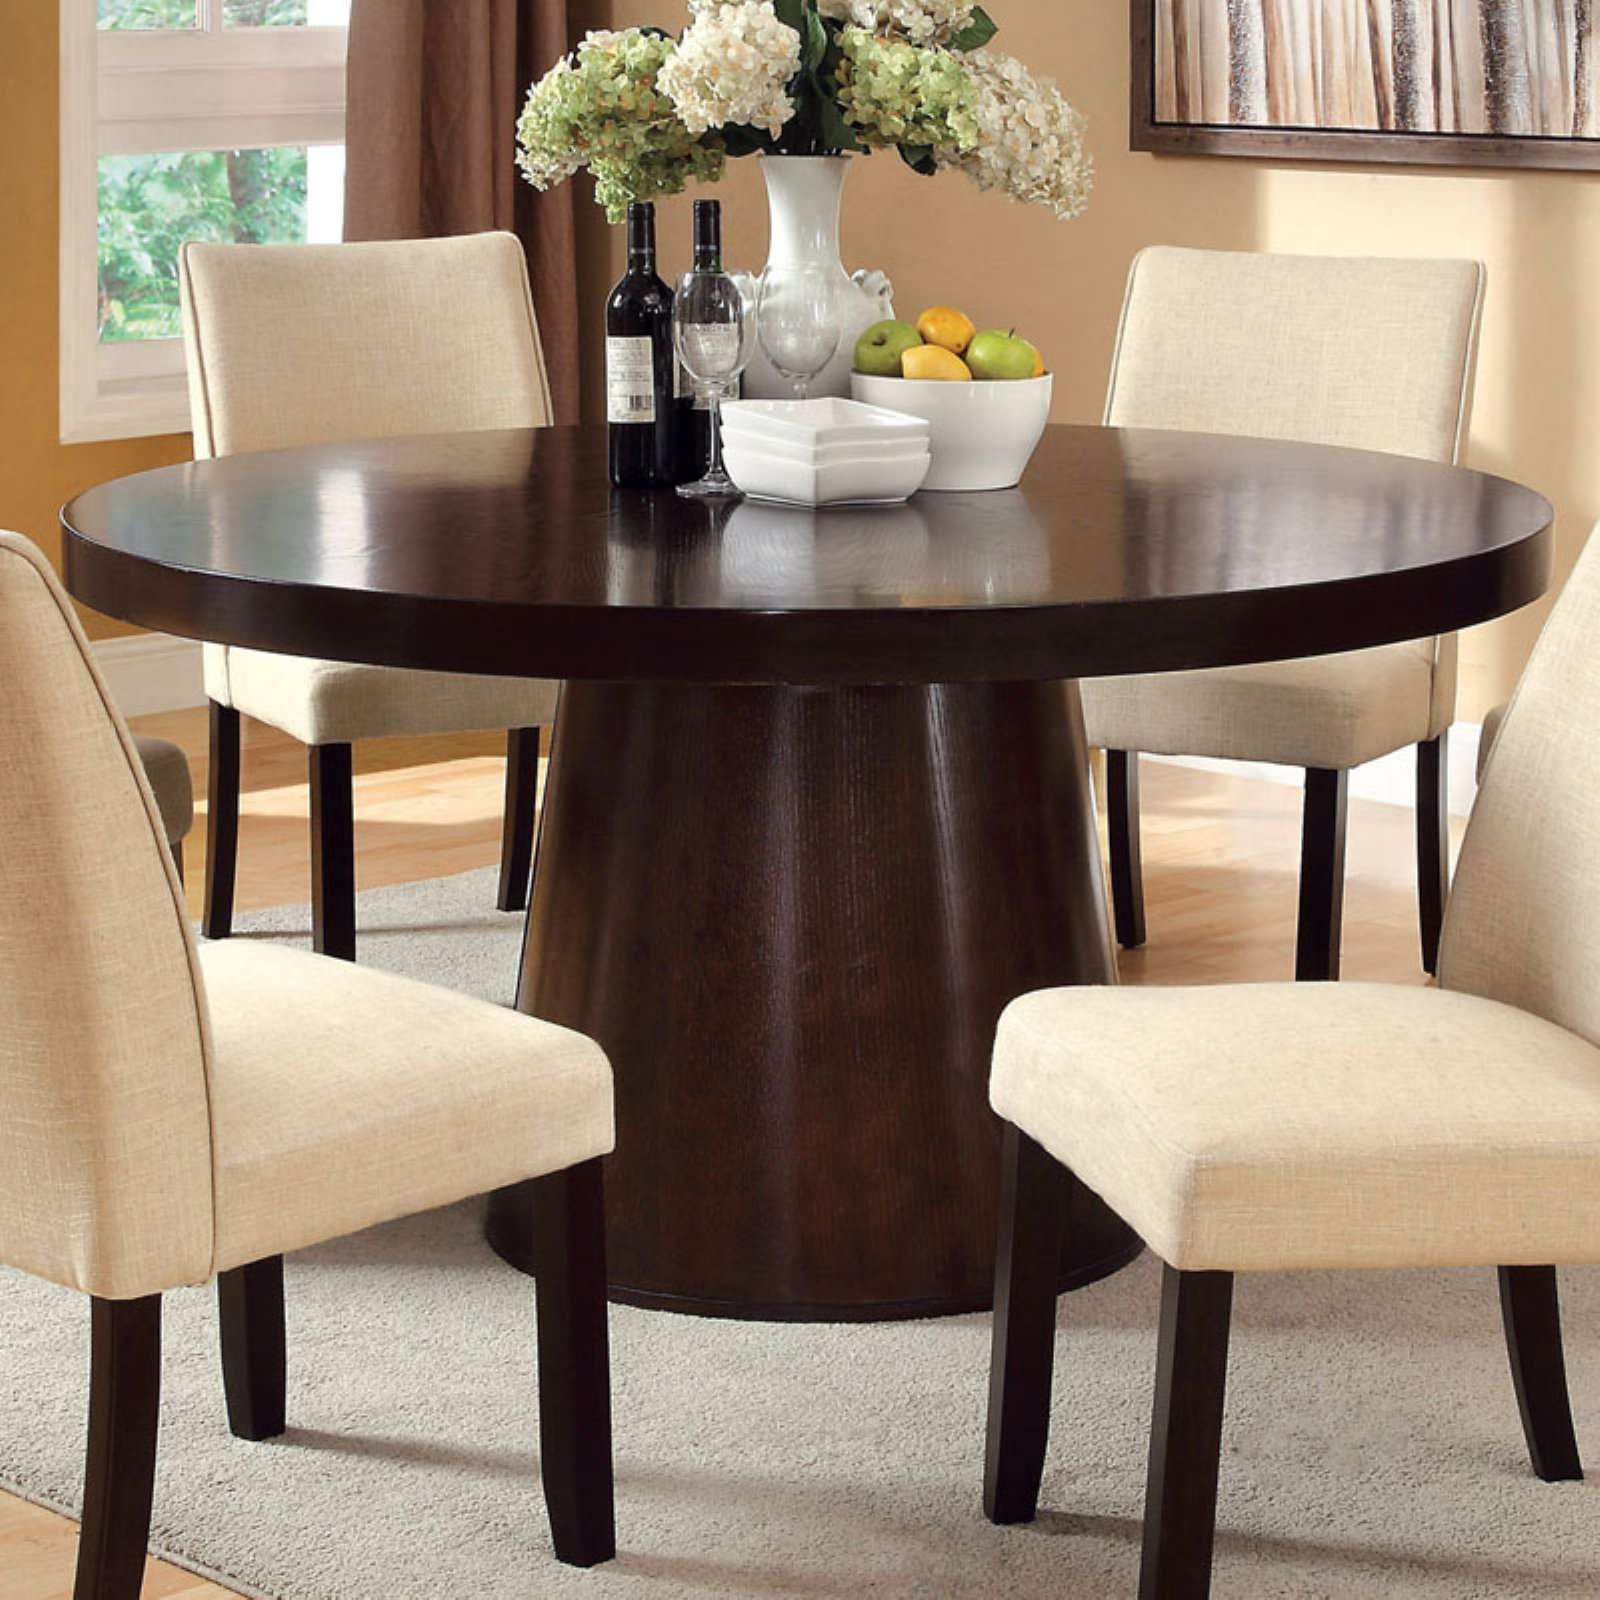 Furniture of America Vessice Round Dining Table by Enitial Lab